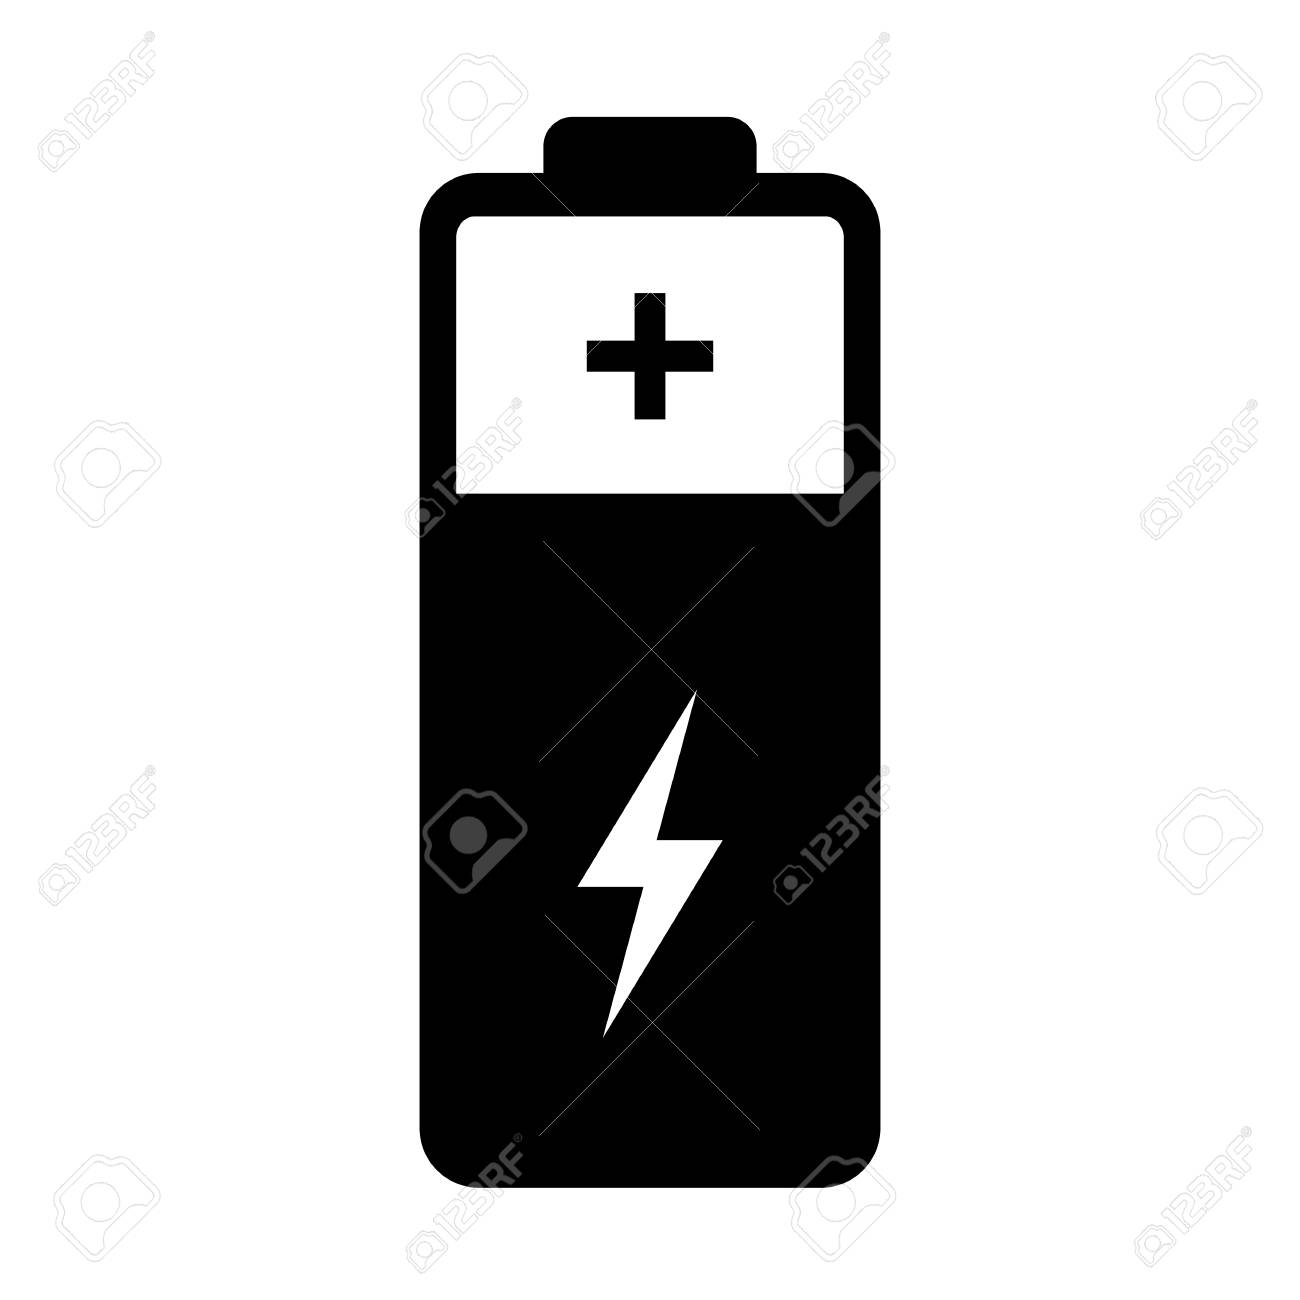 battery vector pictogram royalty free cliparts vectors and stock illustration image 117832124 battery vector pictogram